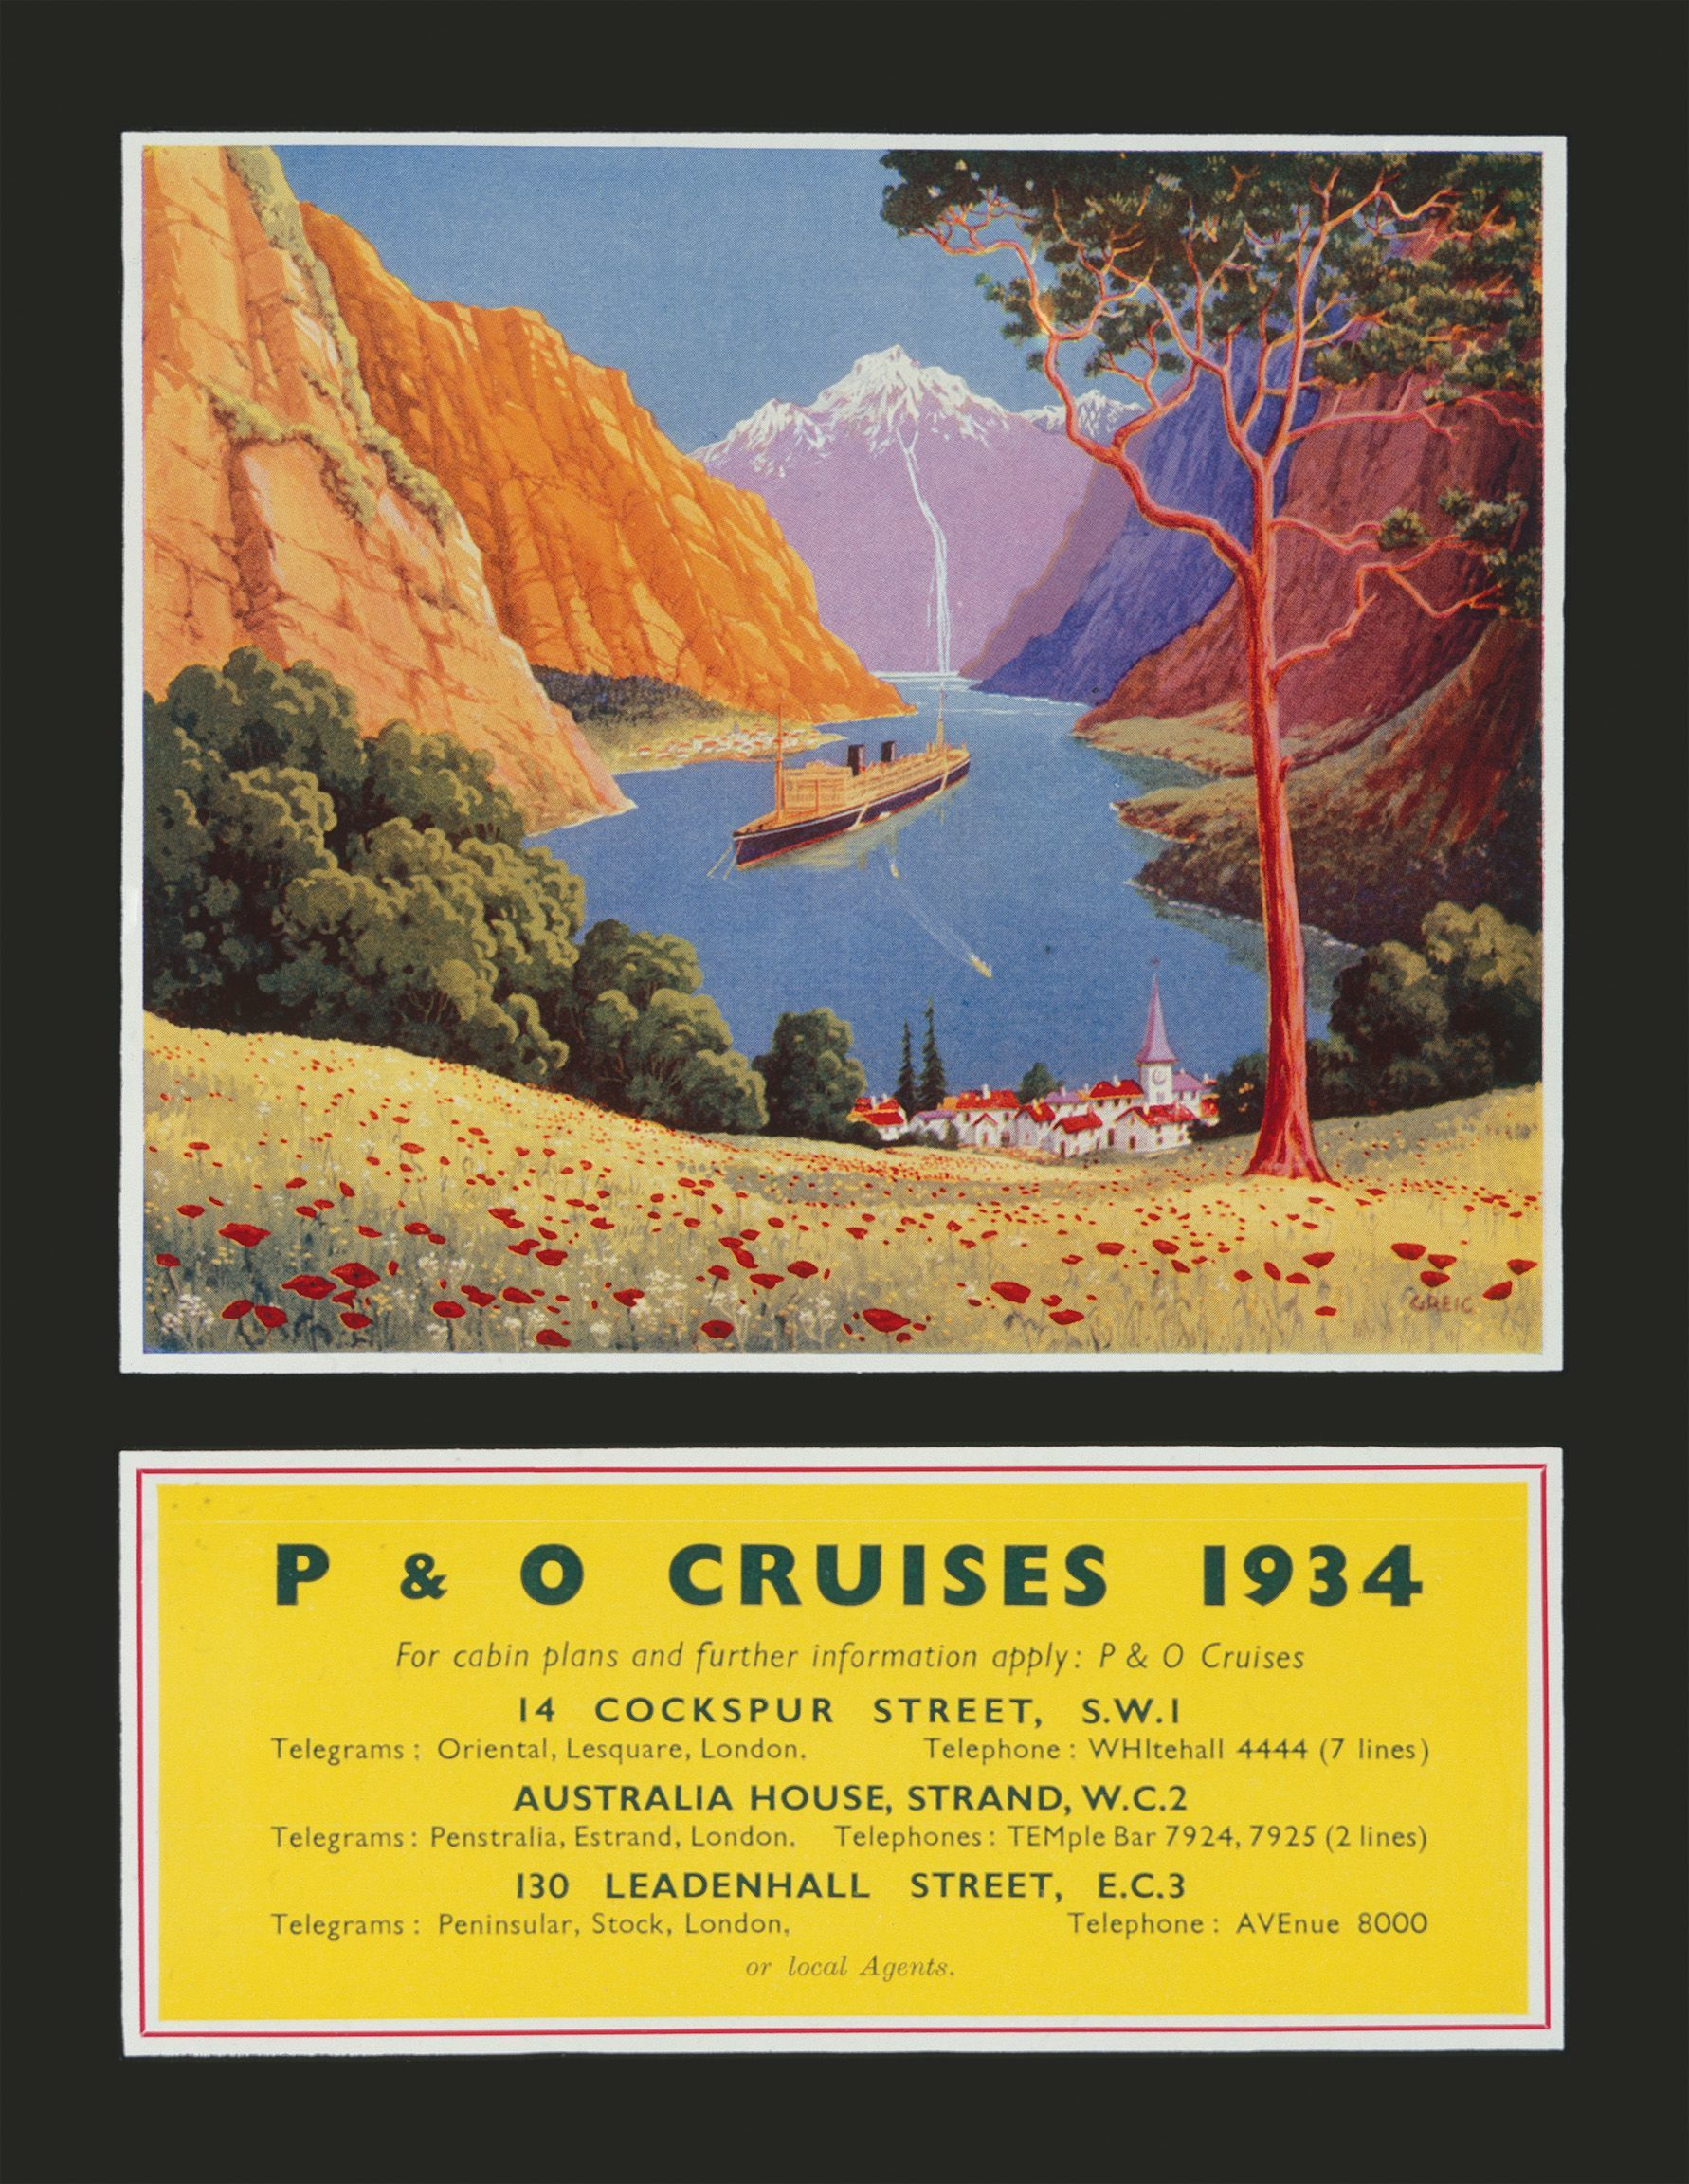 advertisement for P&O cruises to Norway published in The Blue Peter magazine in 1934